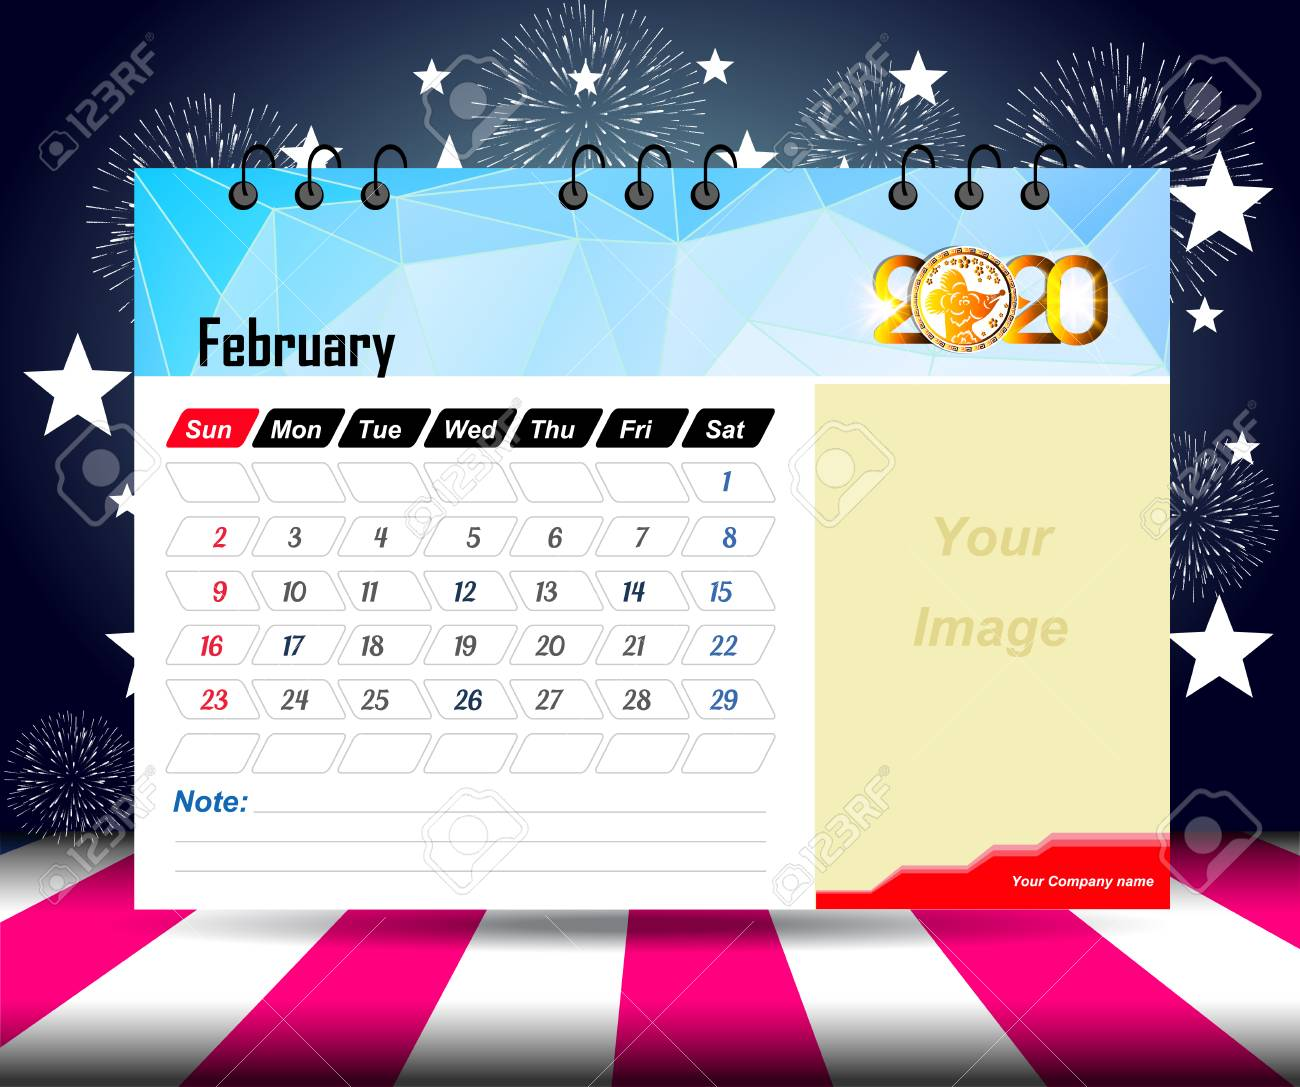 Free February 2020 Calendar Vector February 2020 Calendar For New Year Royalty Free Cliparts, Vectors